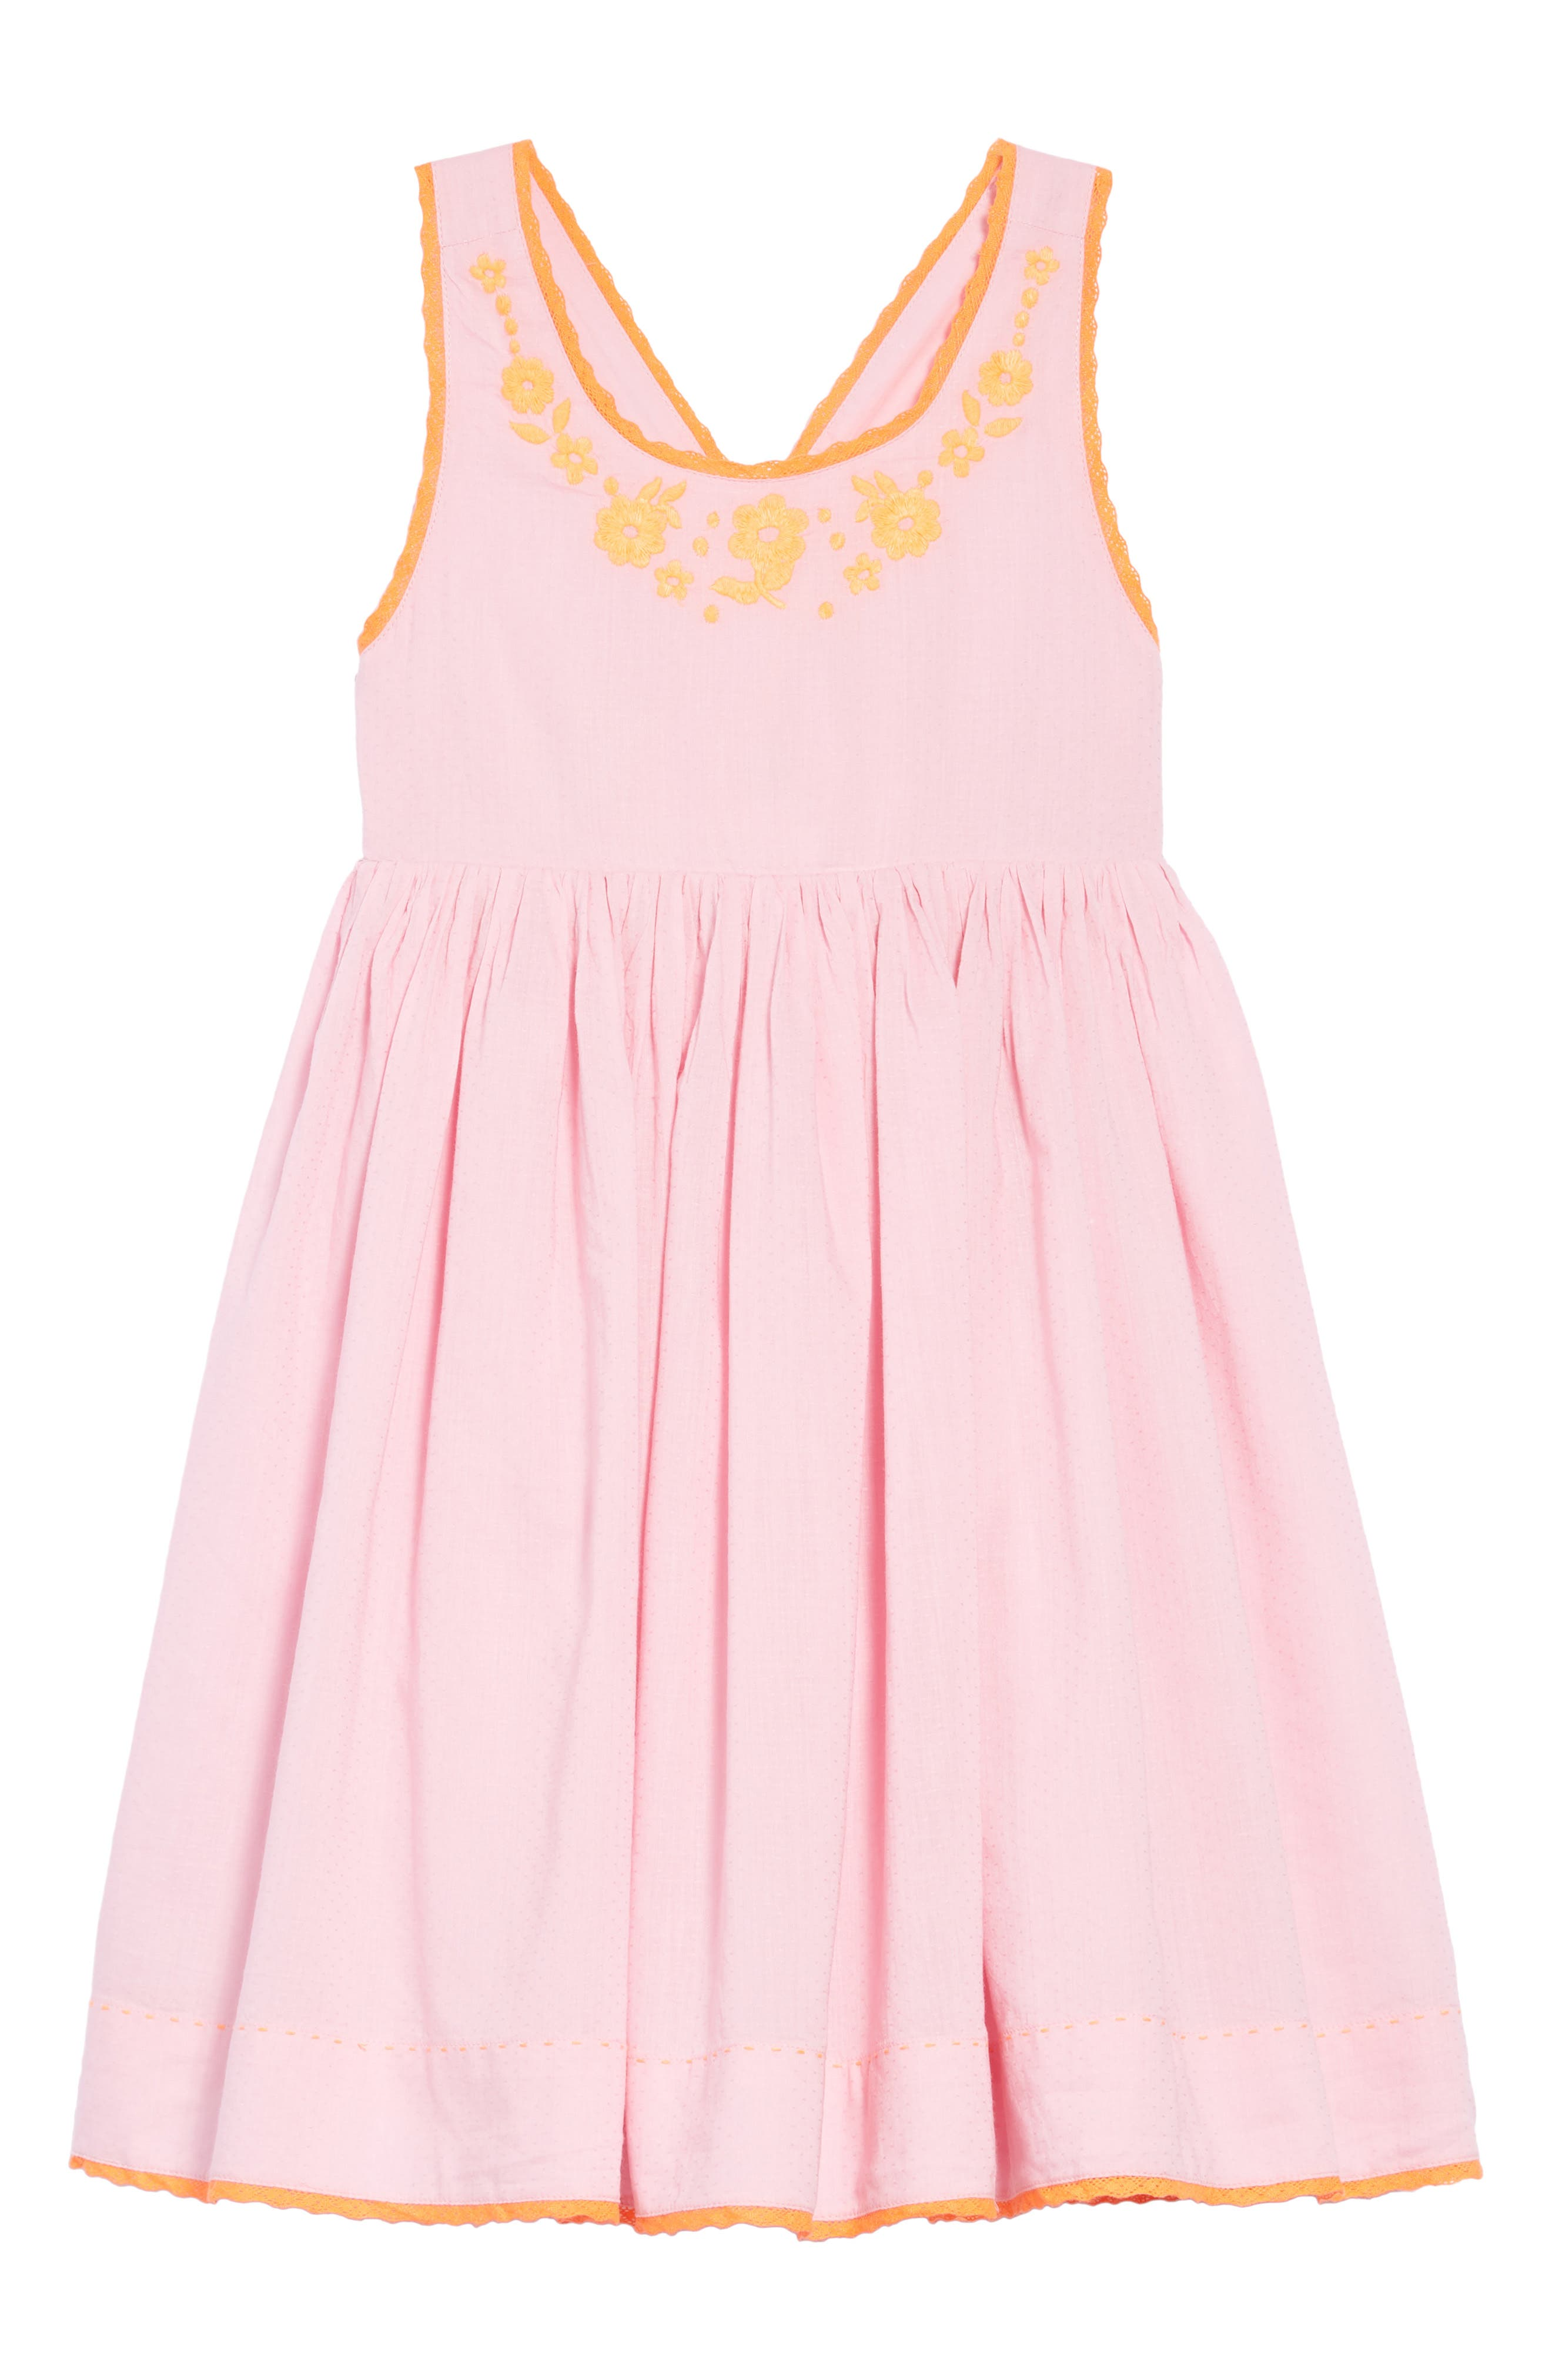 Woven Embroidered Dress,                             Main thumbnail 1, color,                             Rosebud Pink